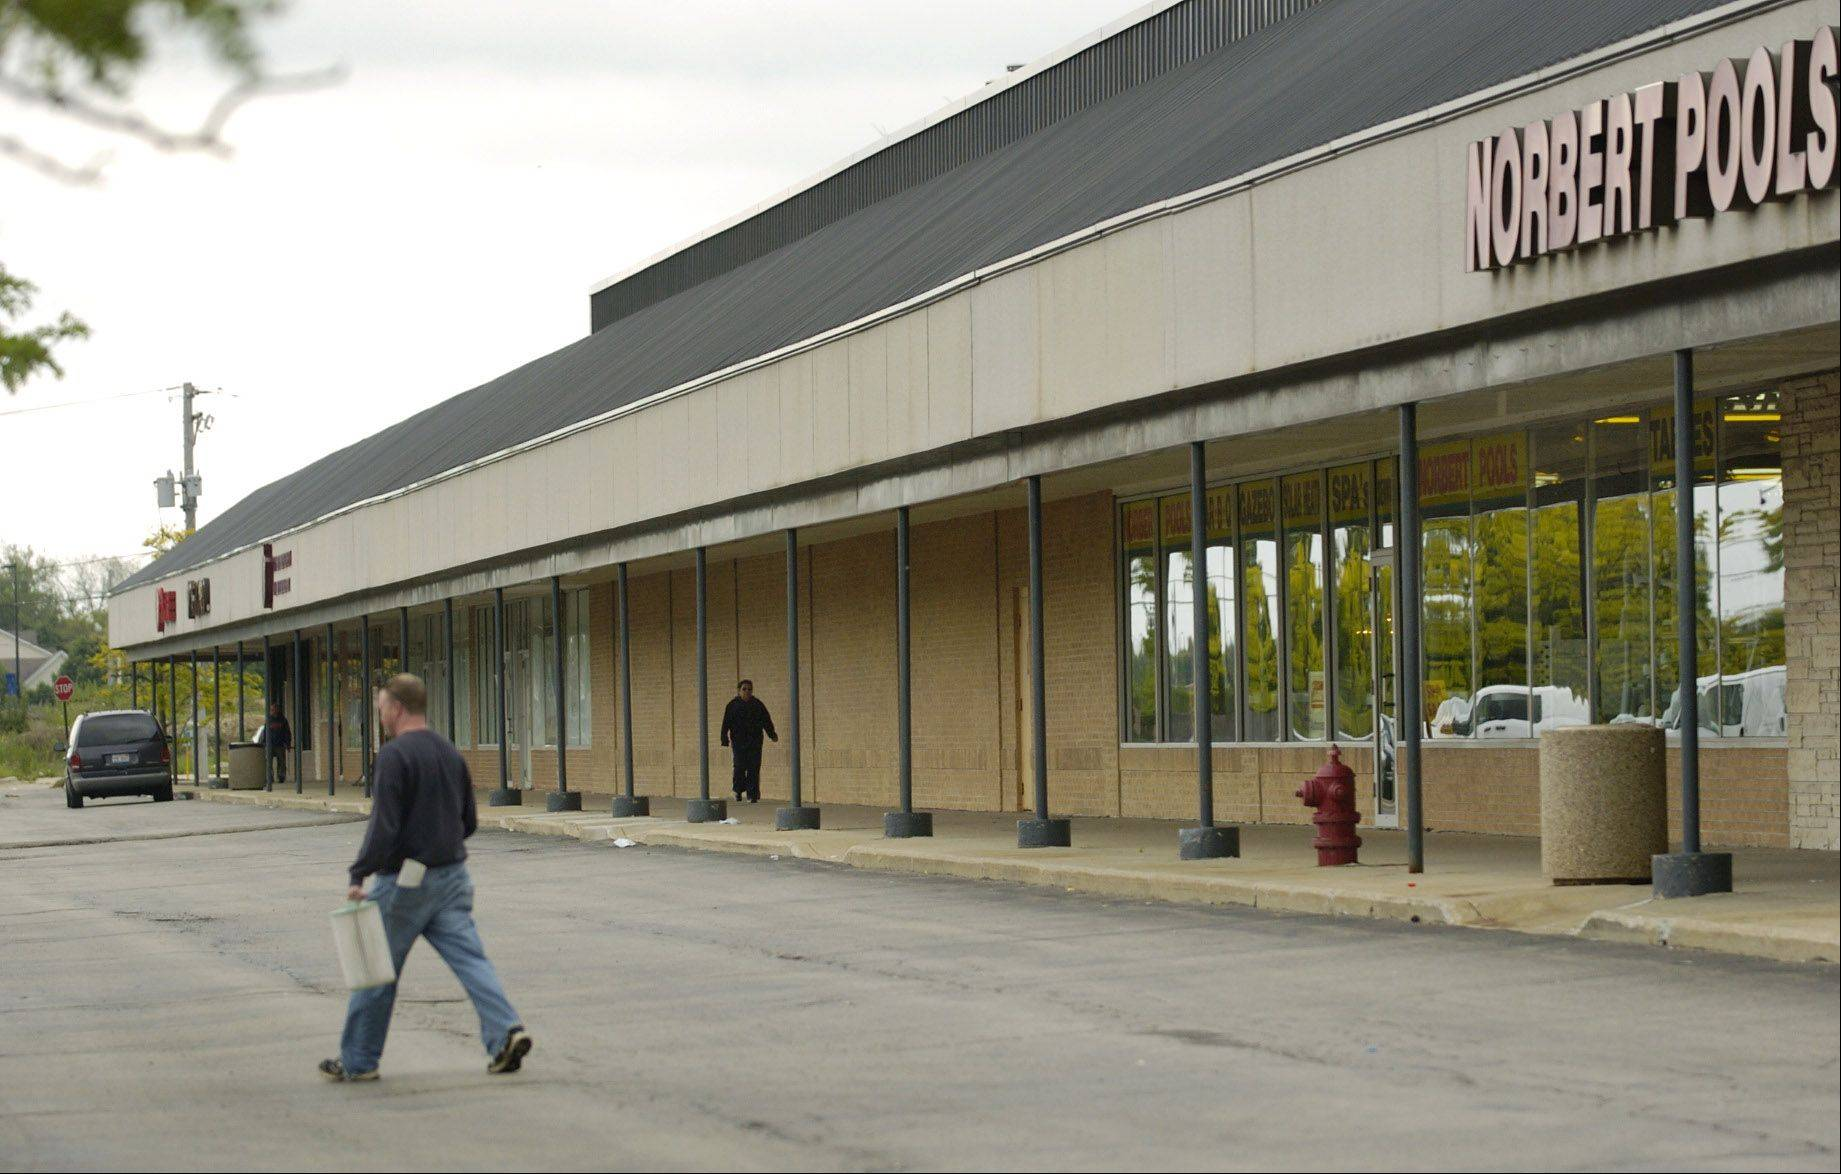 Harper College, Elgin Community College and workNet plan to open an extension site at the former Norbert Pools in the Hanover Square shopping center.